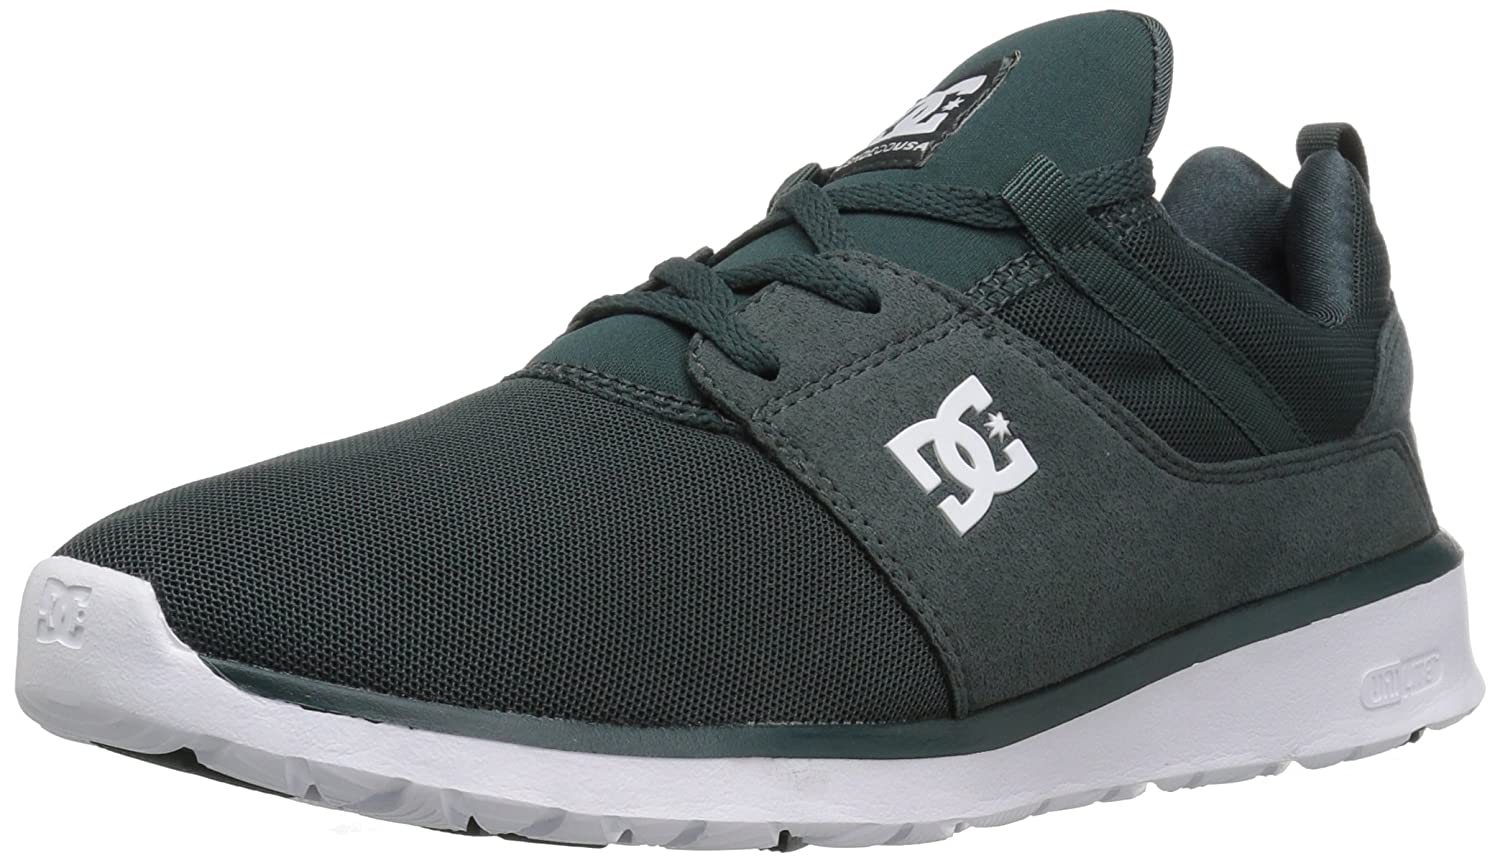 DC Men's Heathrow Casual Skate Shoe B01H4XACEO 4.5 D(M) US|Dark Green